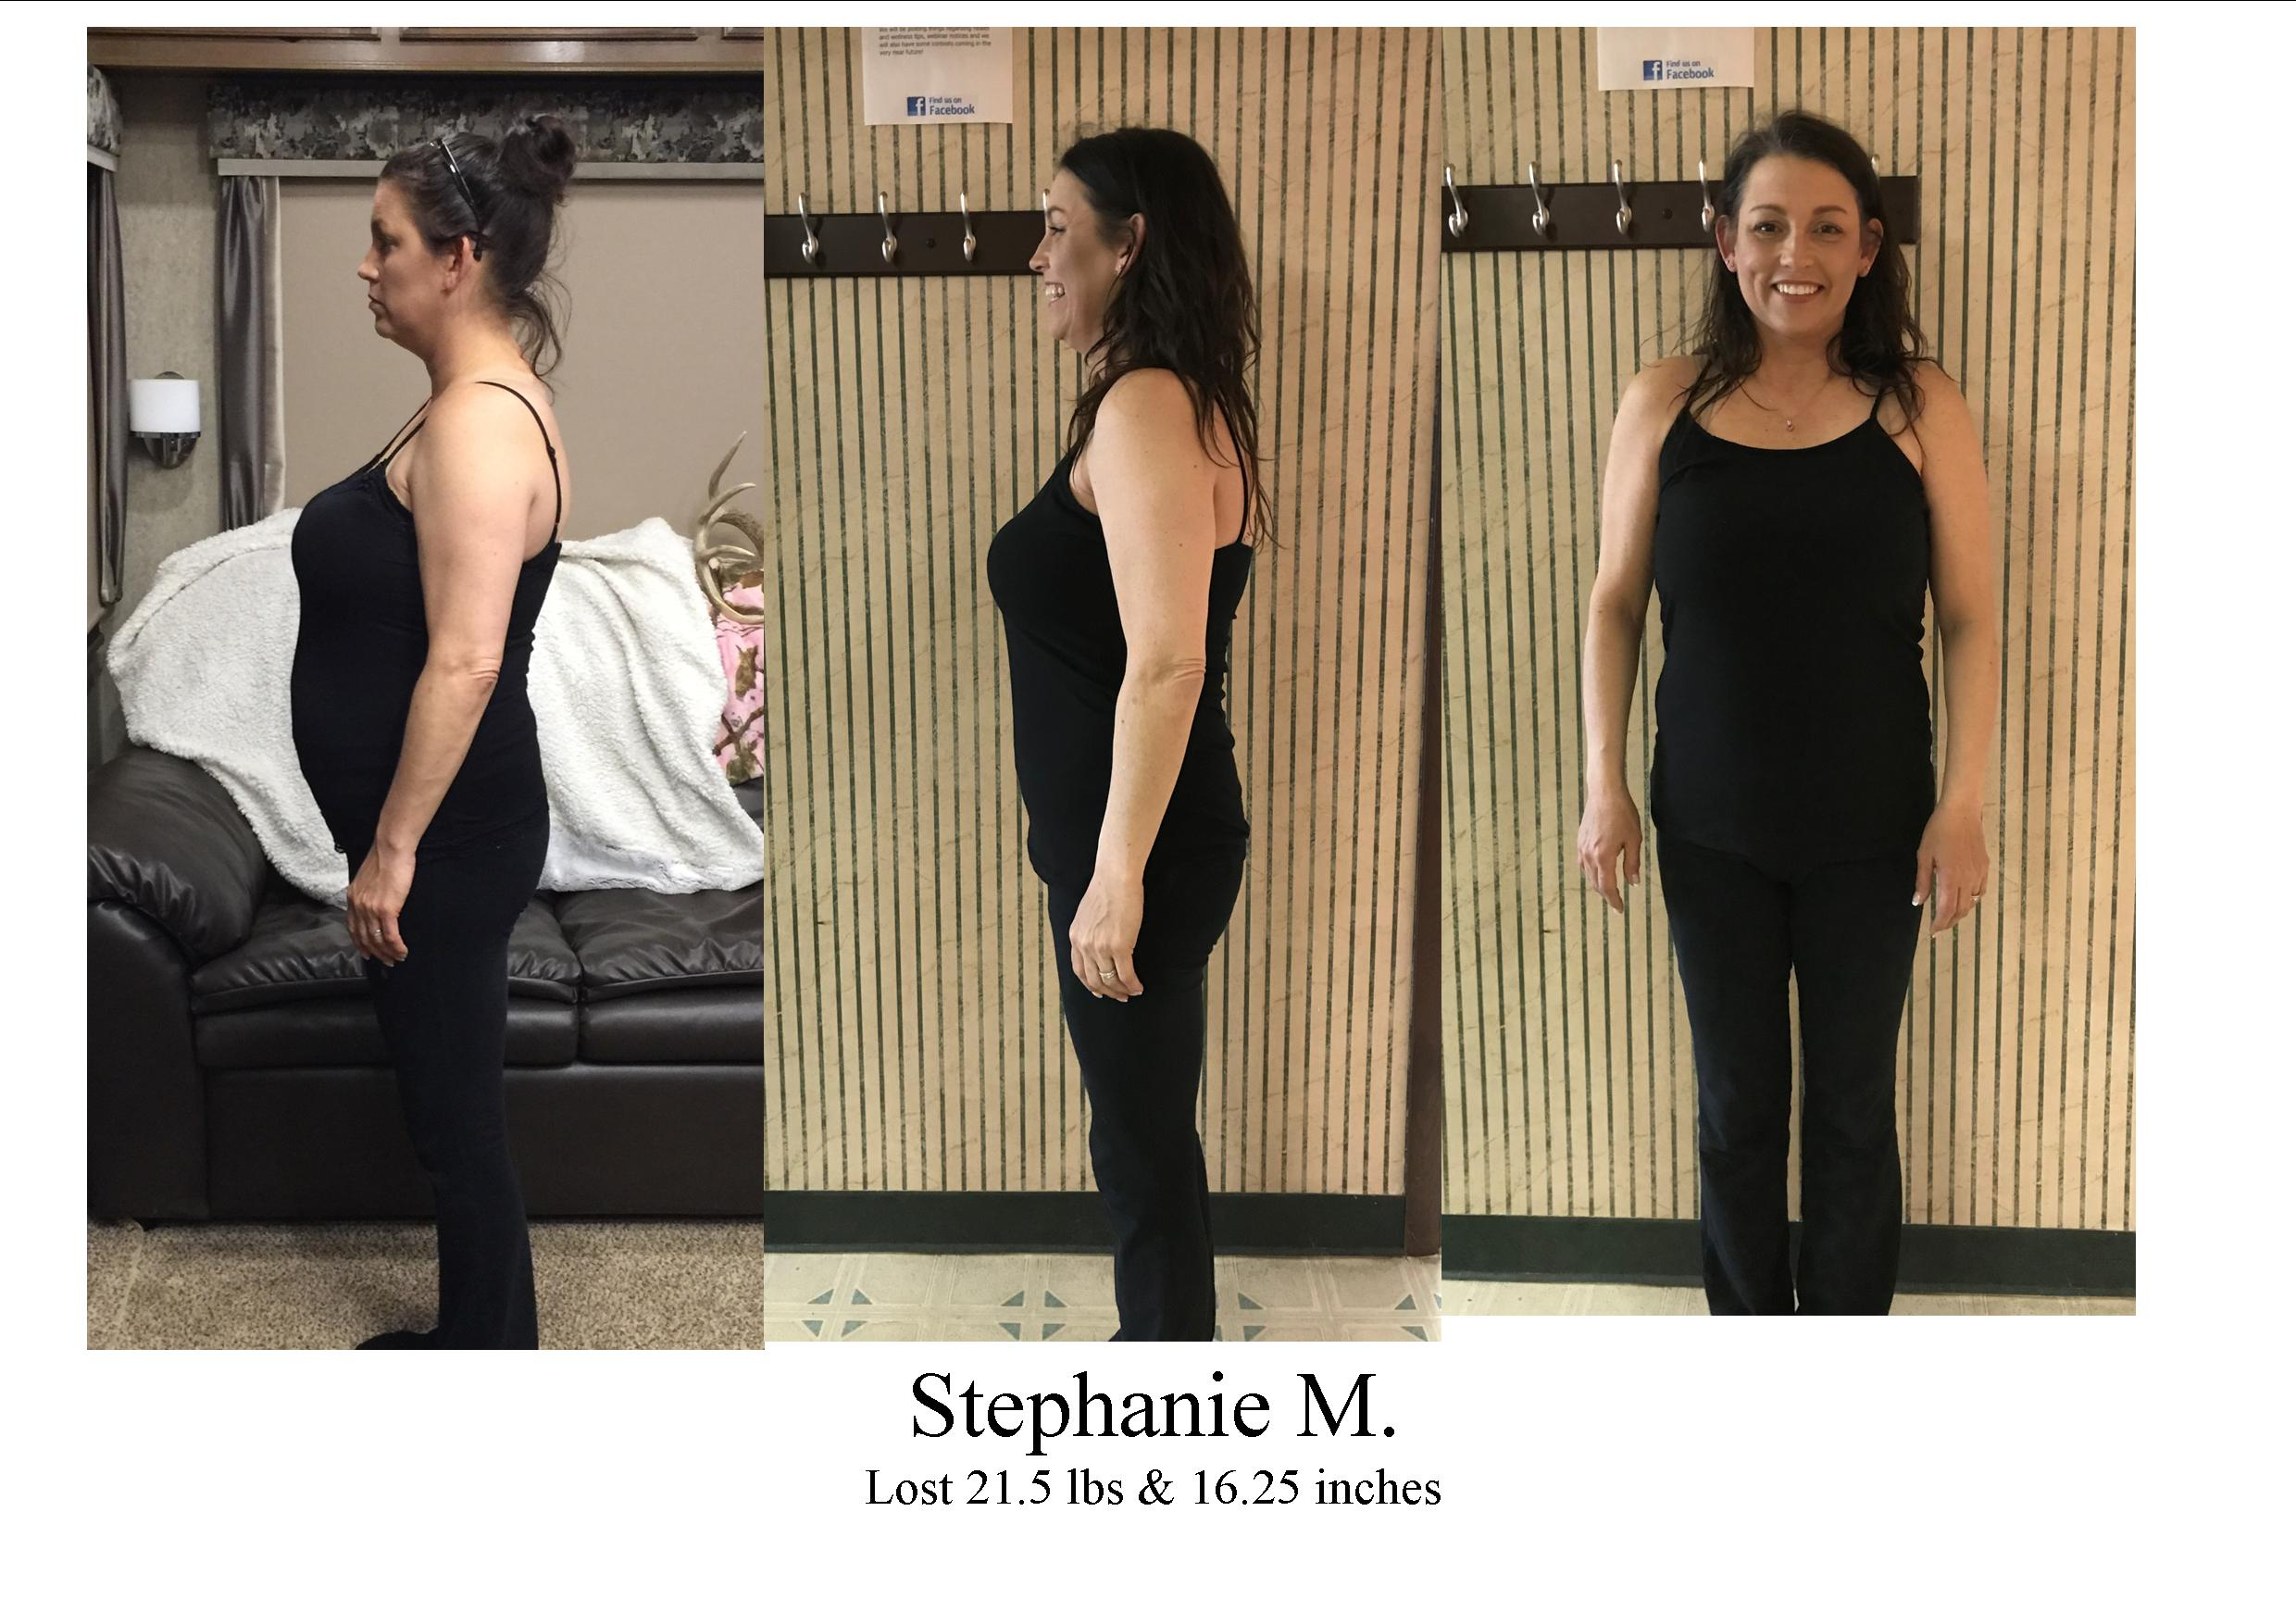 Weight Loss - Stephanie M